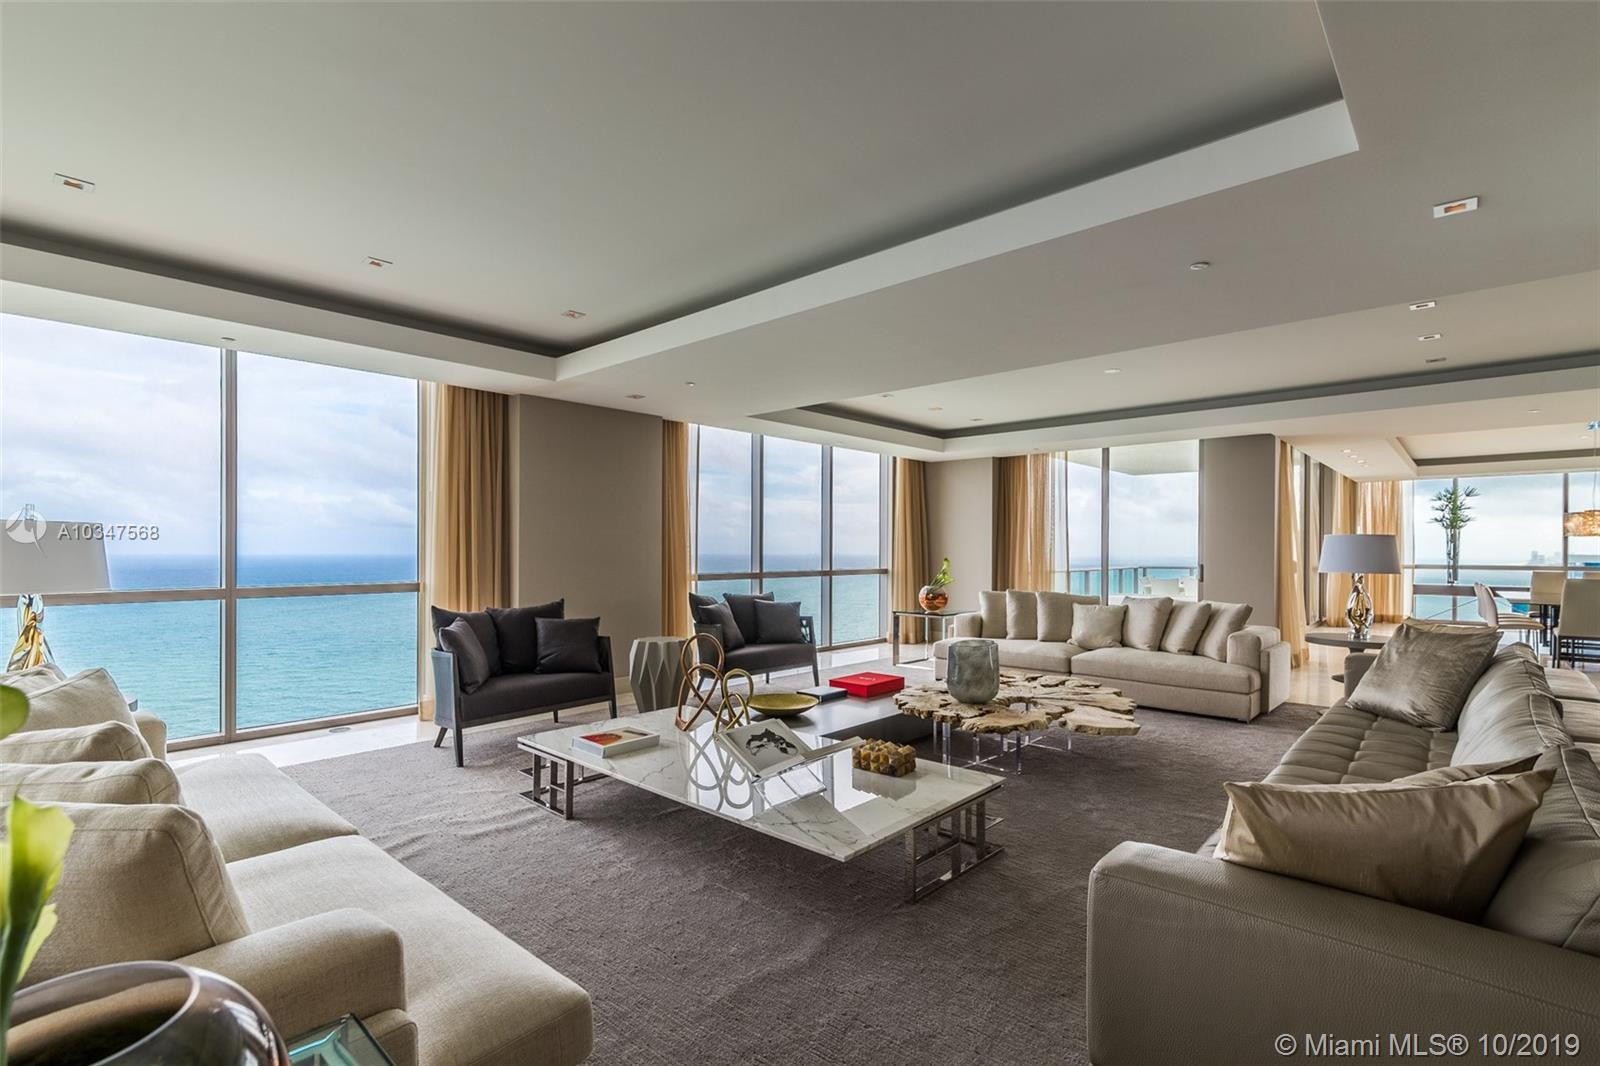 17749 COLLINS AV, one of homes for sale in Sunny Isles Beach